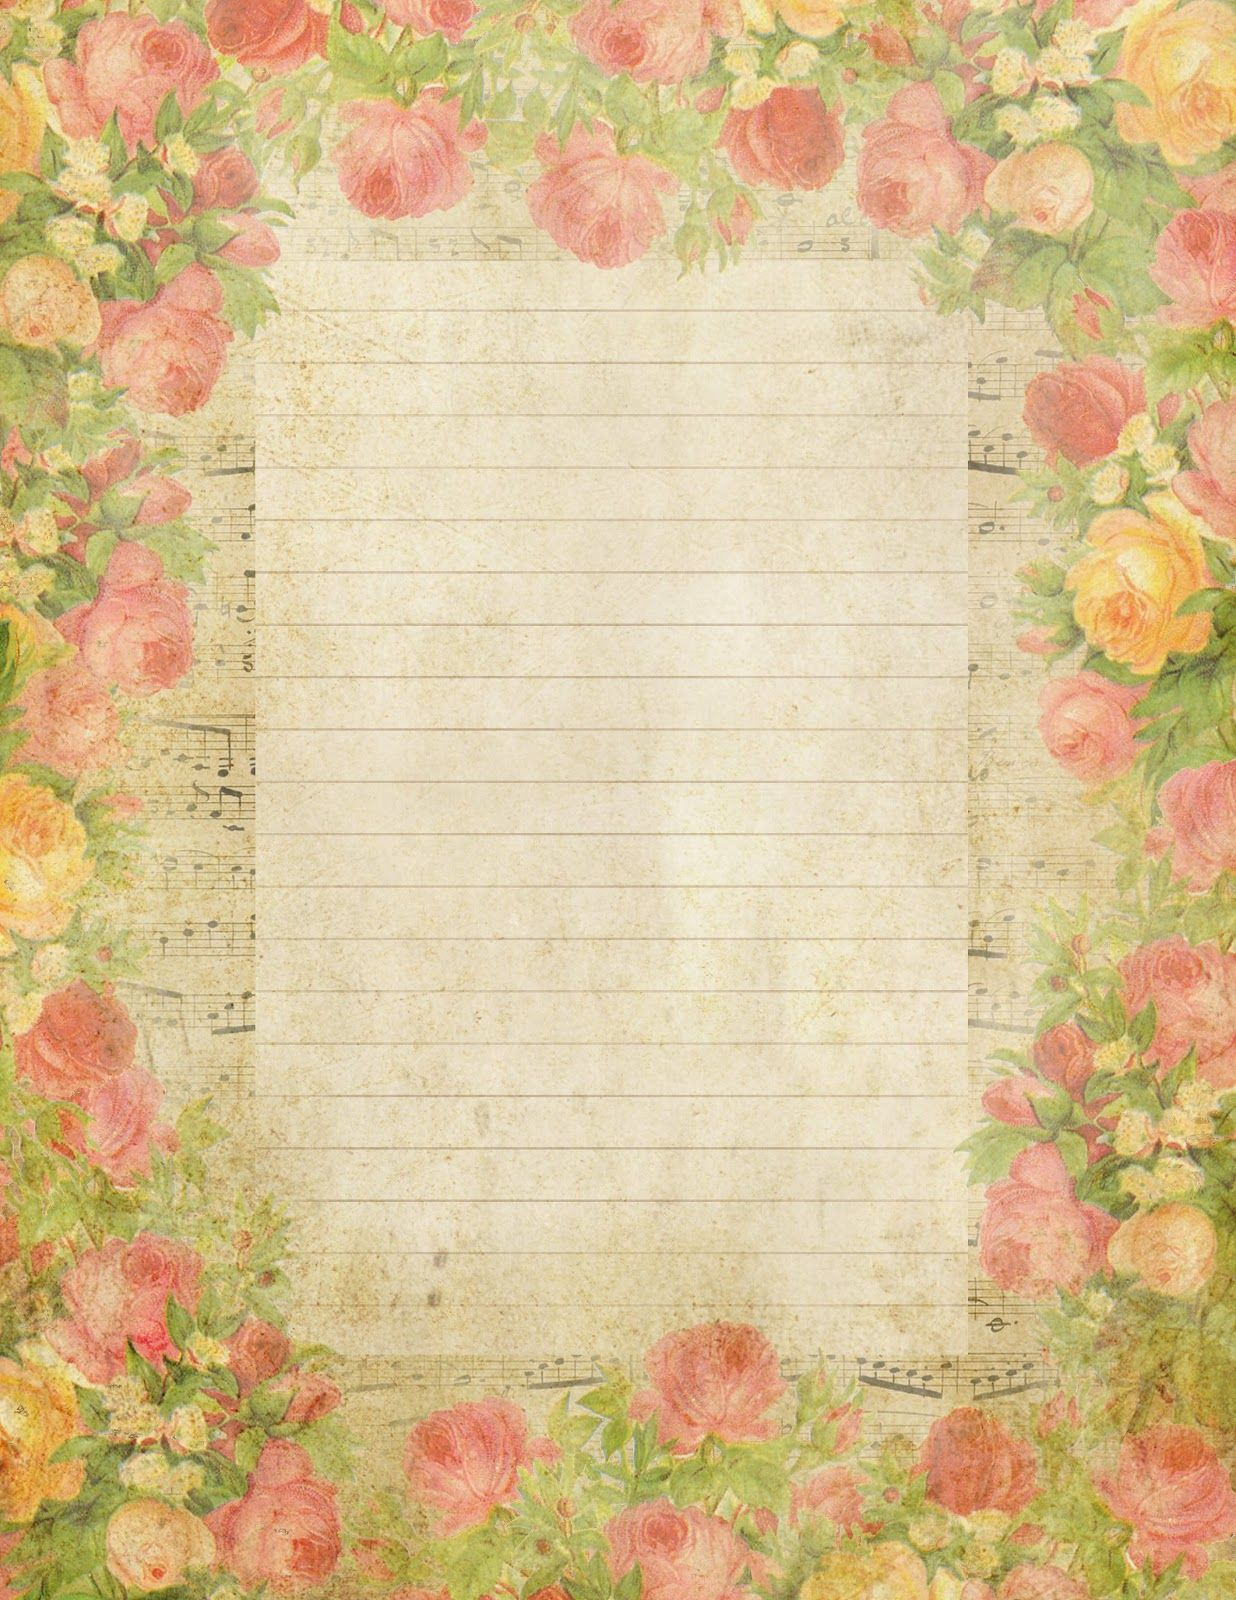 Scrapbooking  Lined Paper To Type On